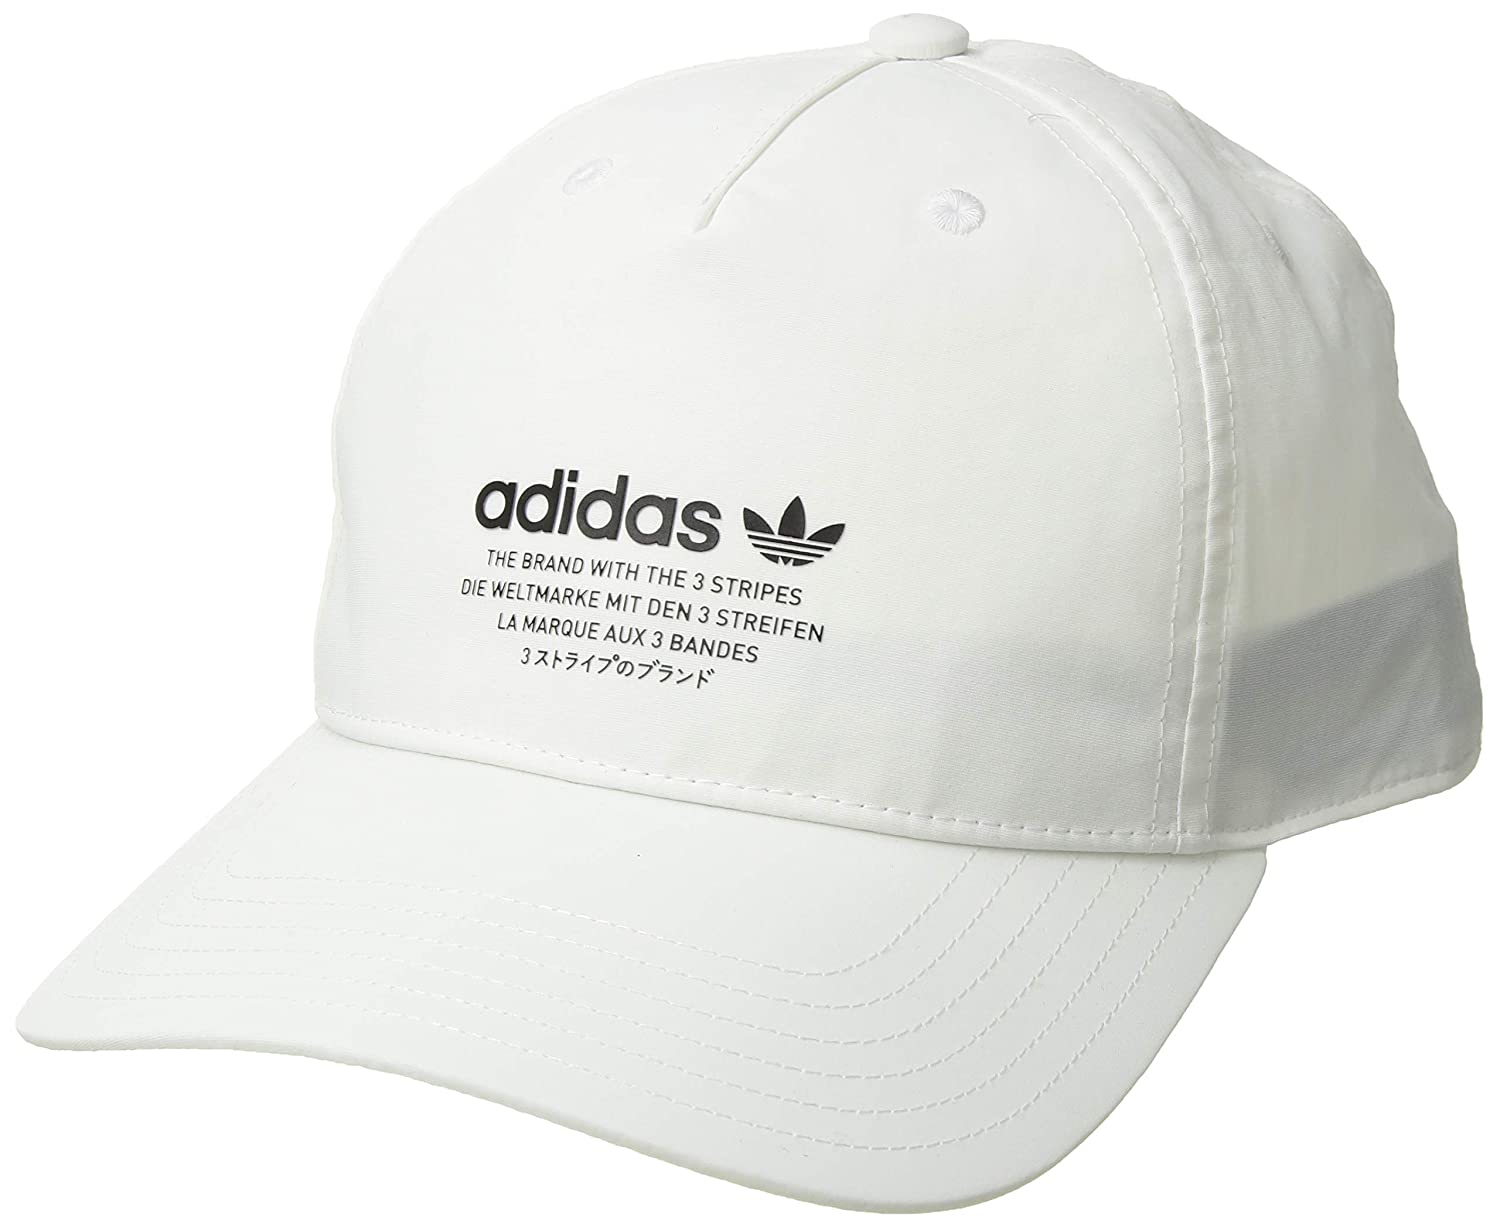 b4efee26 Amazon.com: adidas Men's Originals NMD Relaxed Strapback Cap, black/white,  One Size: Sports & Outdoors